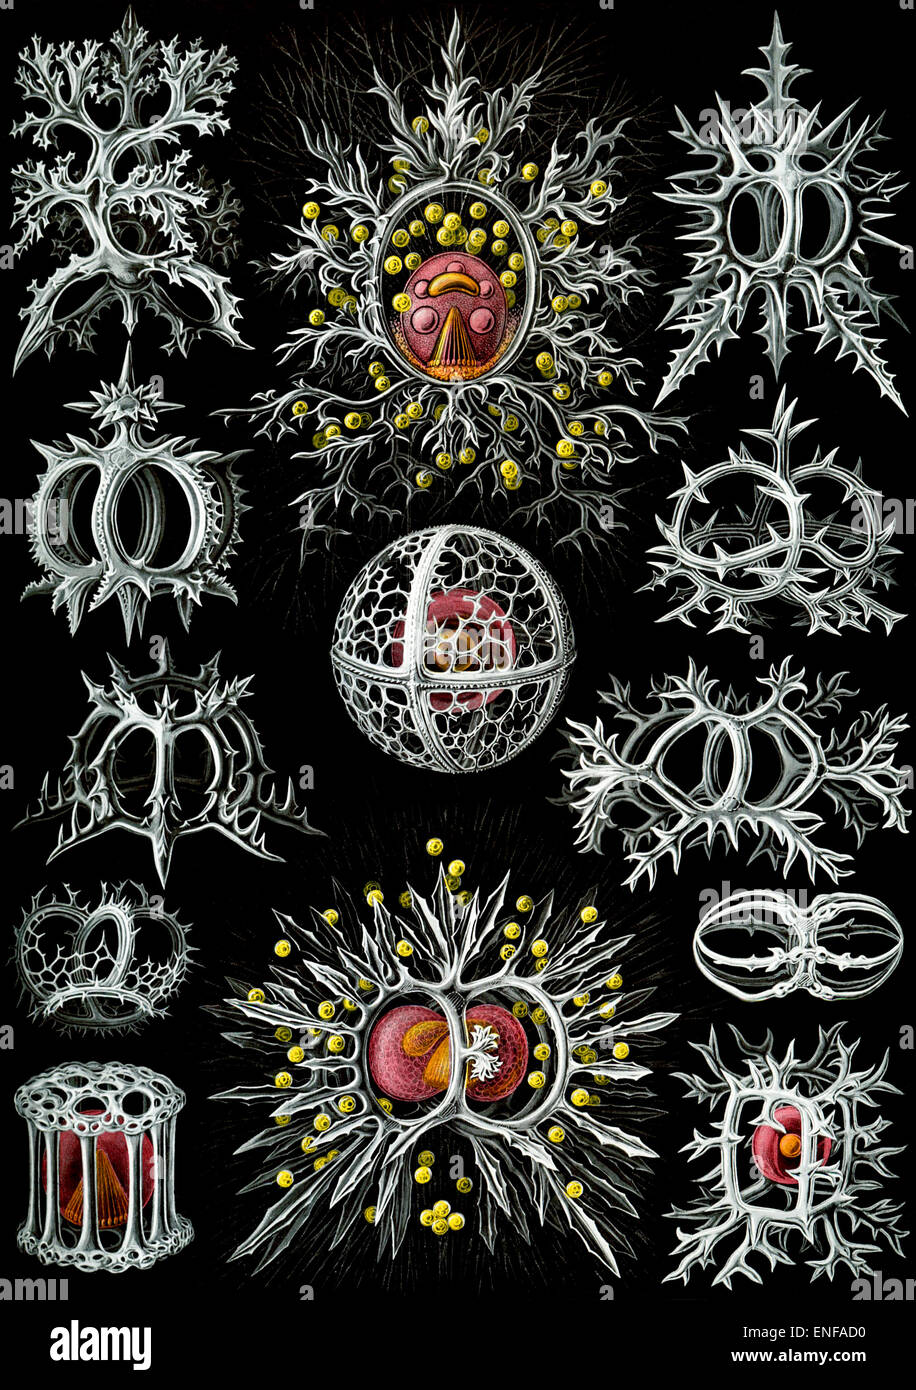 Stephoidea (Zooplankton), by Ernst Haeckel, 1904 - Editorial use only. - Stock Image